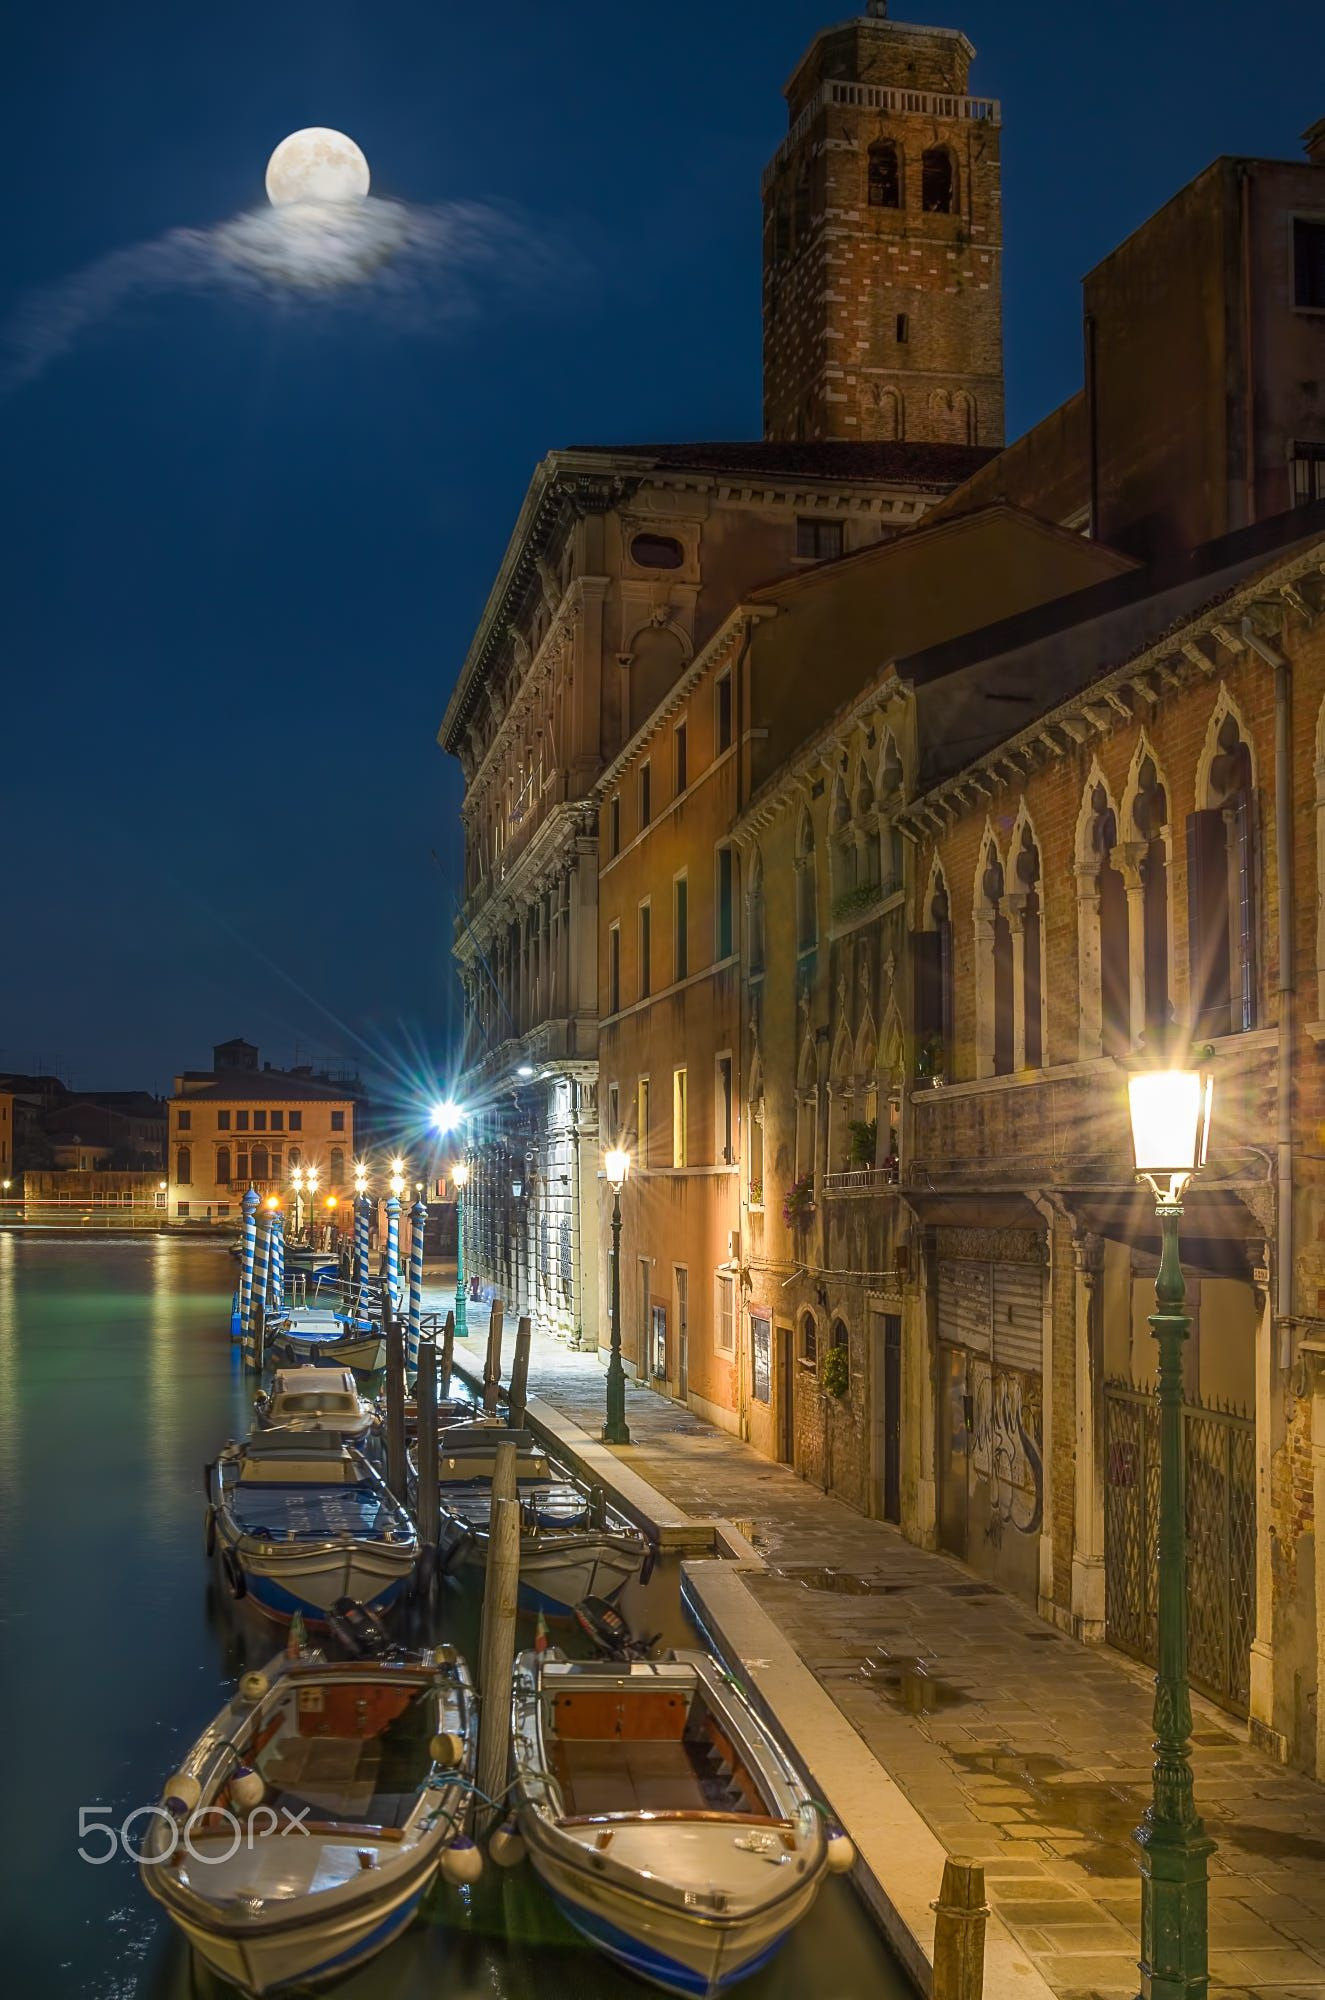 Anchored boats in Venice canal, street lit by lamps and full moon, with moving clouds and green water reflection.